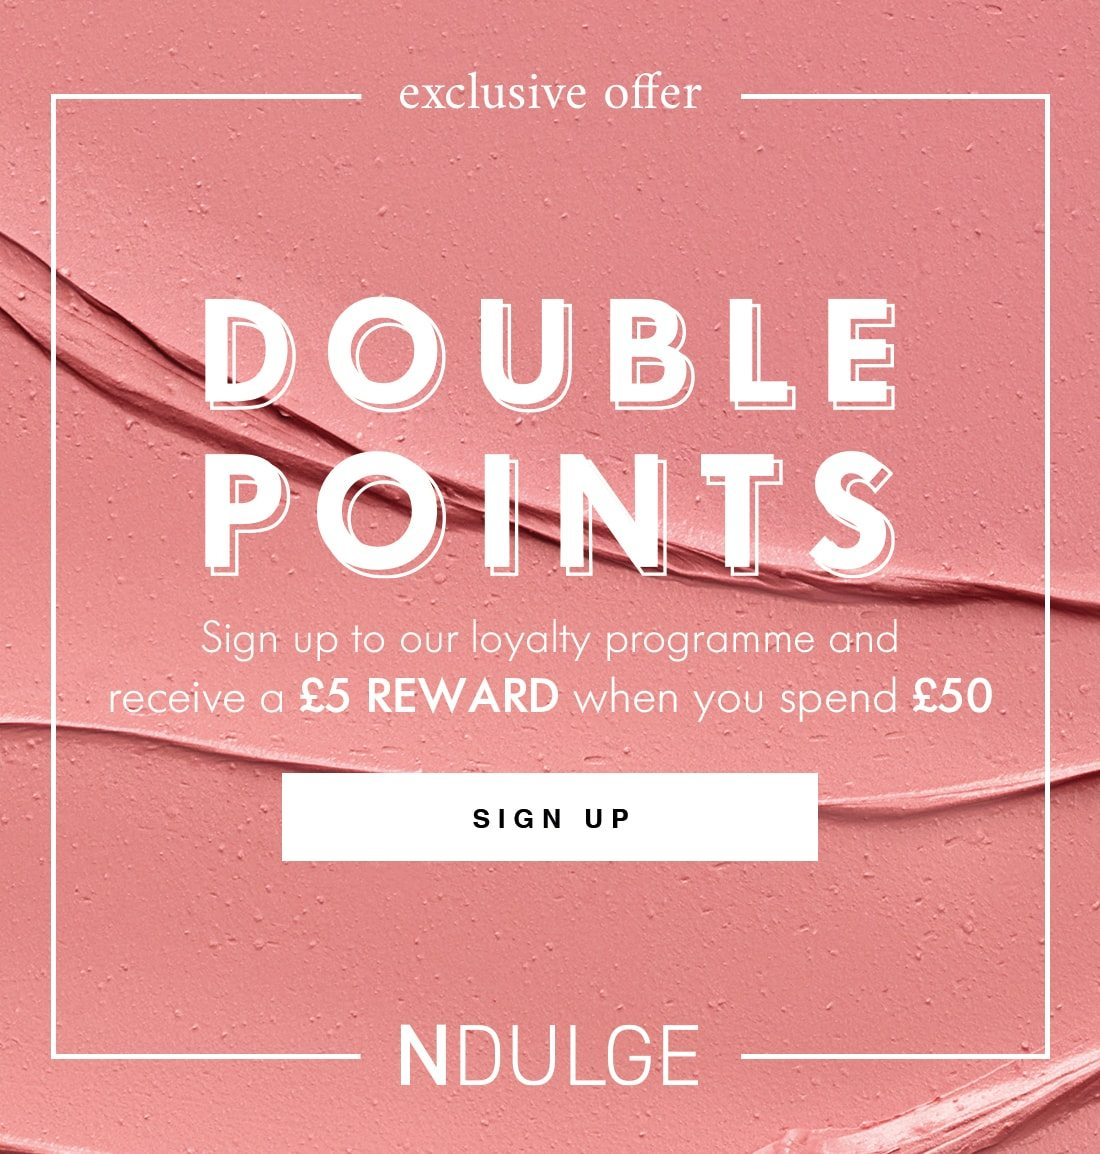 exclusive offer DOUBLE POINTS Sign up to our loyalty programme and receive a £5 REWARD when you spend £50 SIGN UP